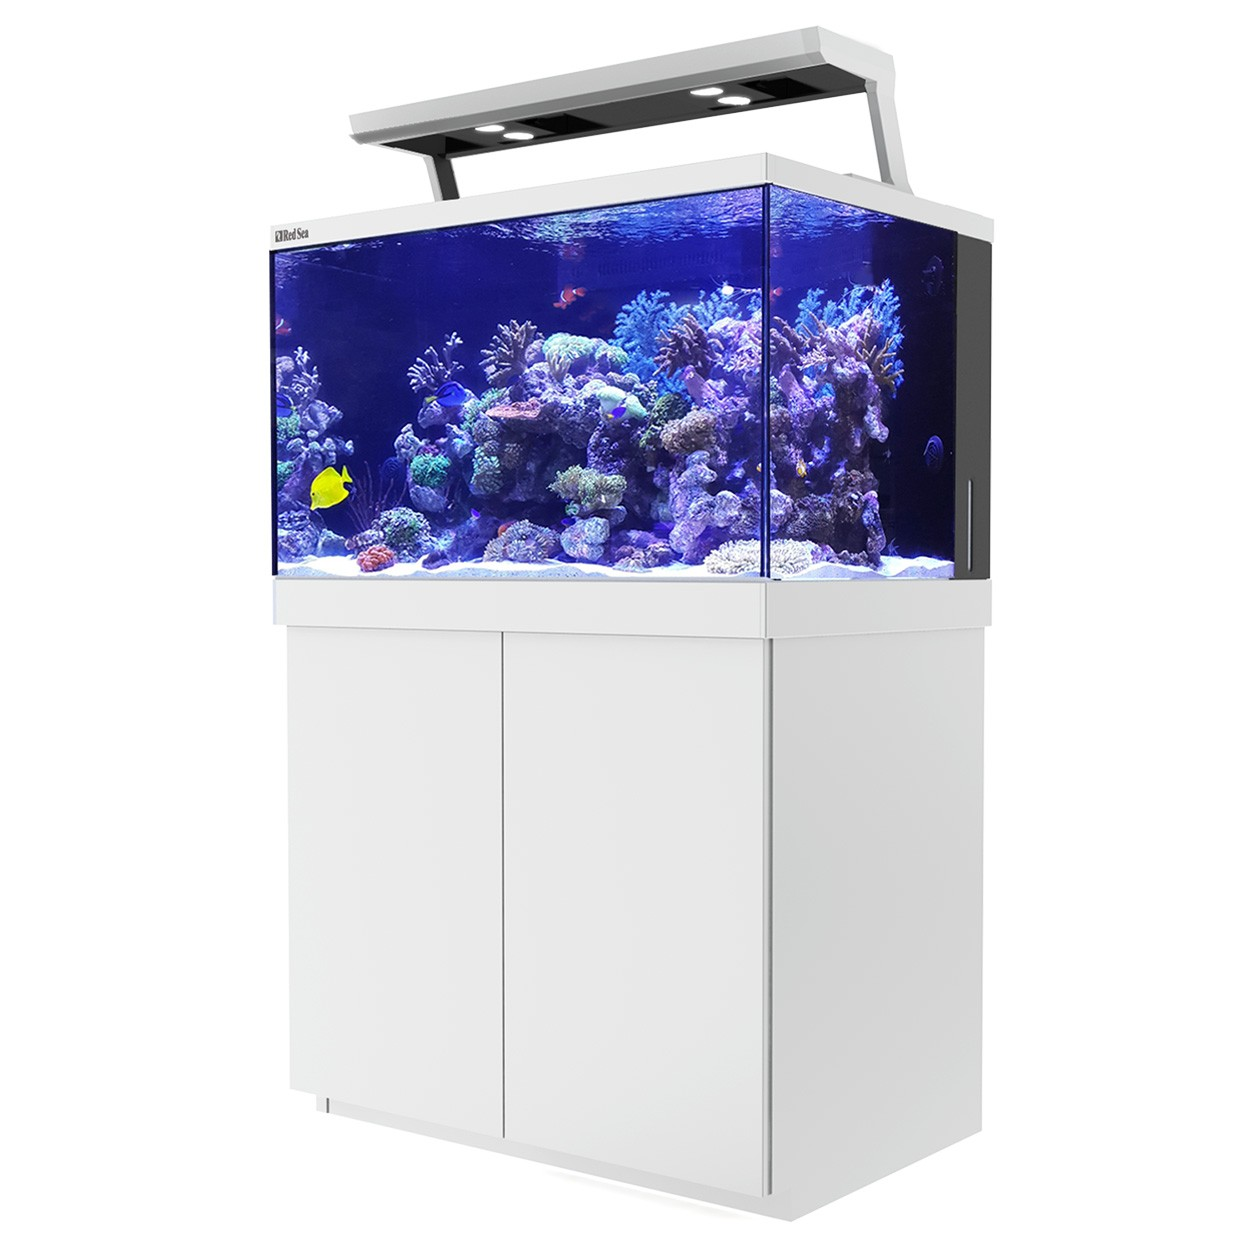 red sea max s 400 reef spec aquarium system with stand. Black Bedroom Furniture Sets. Home Design Ideas